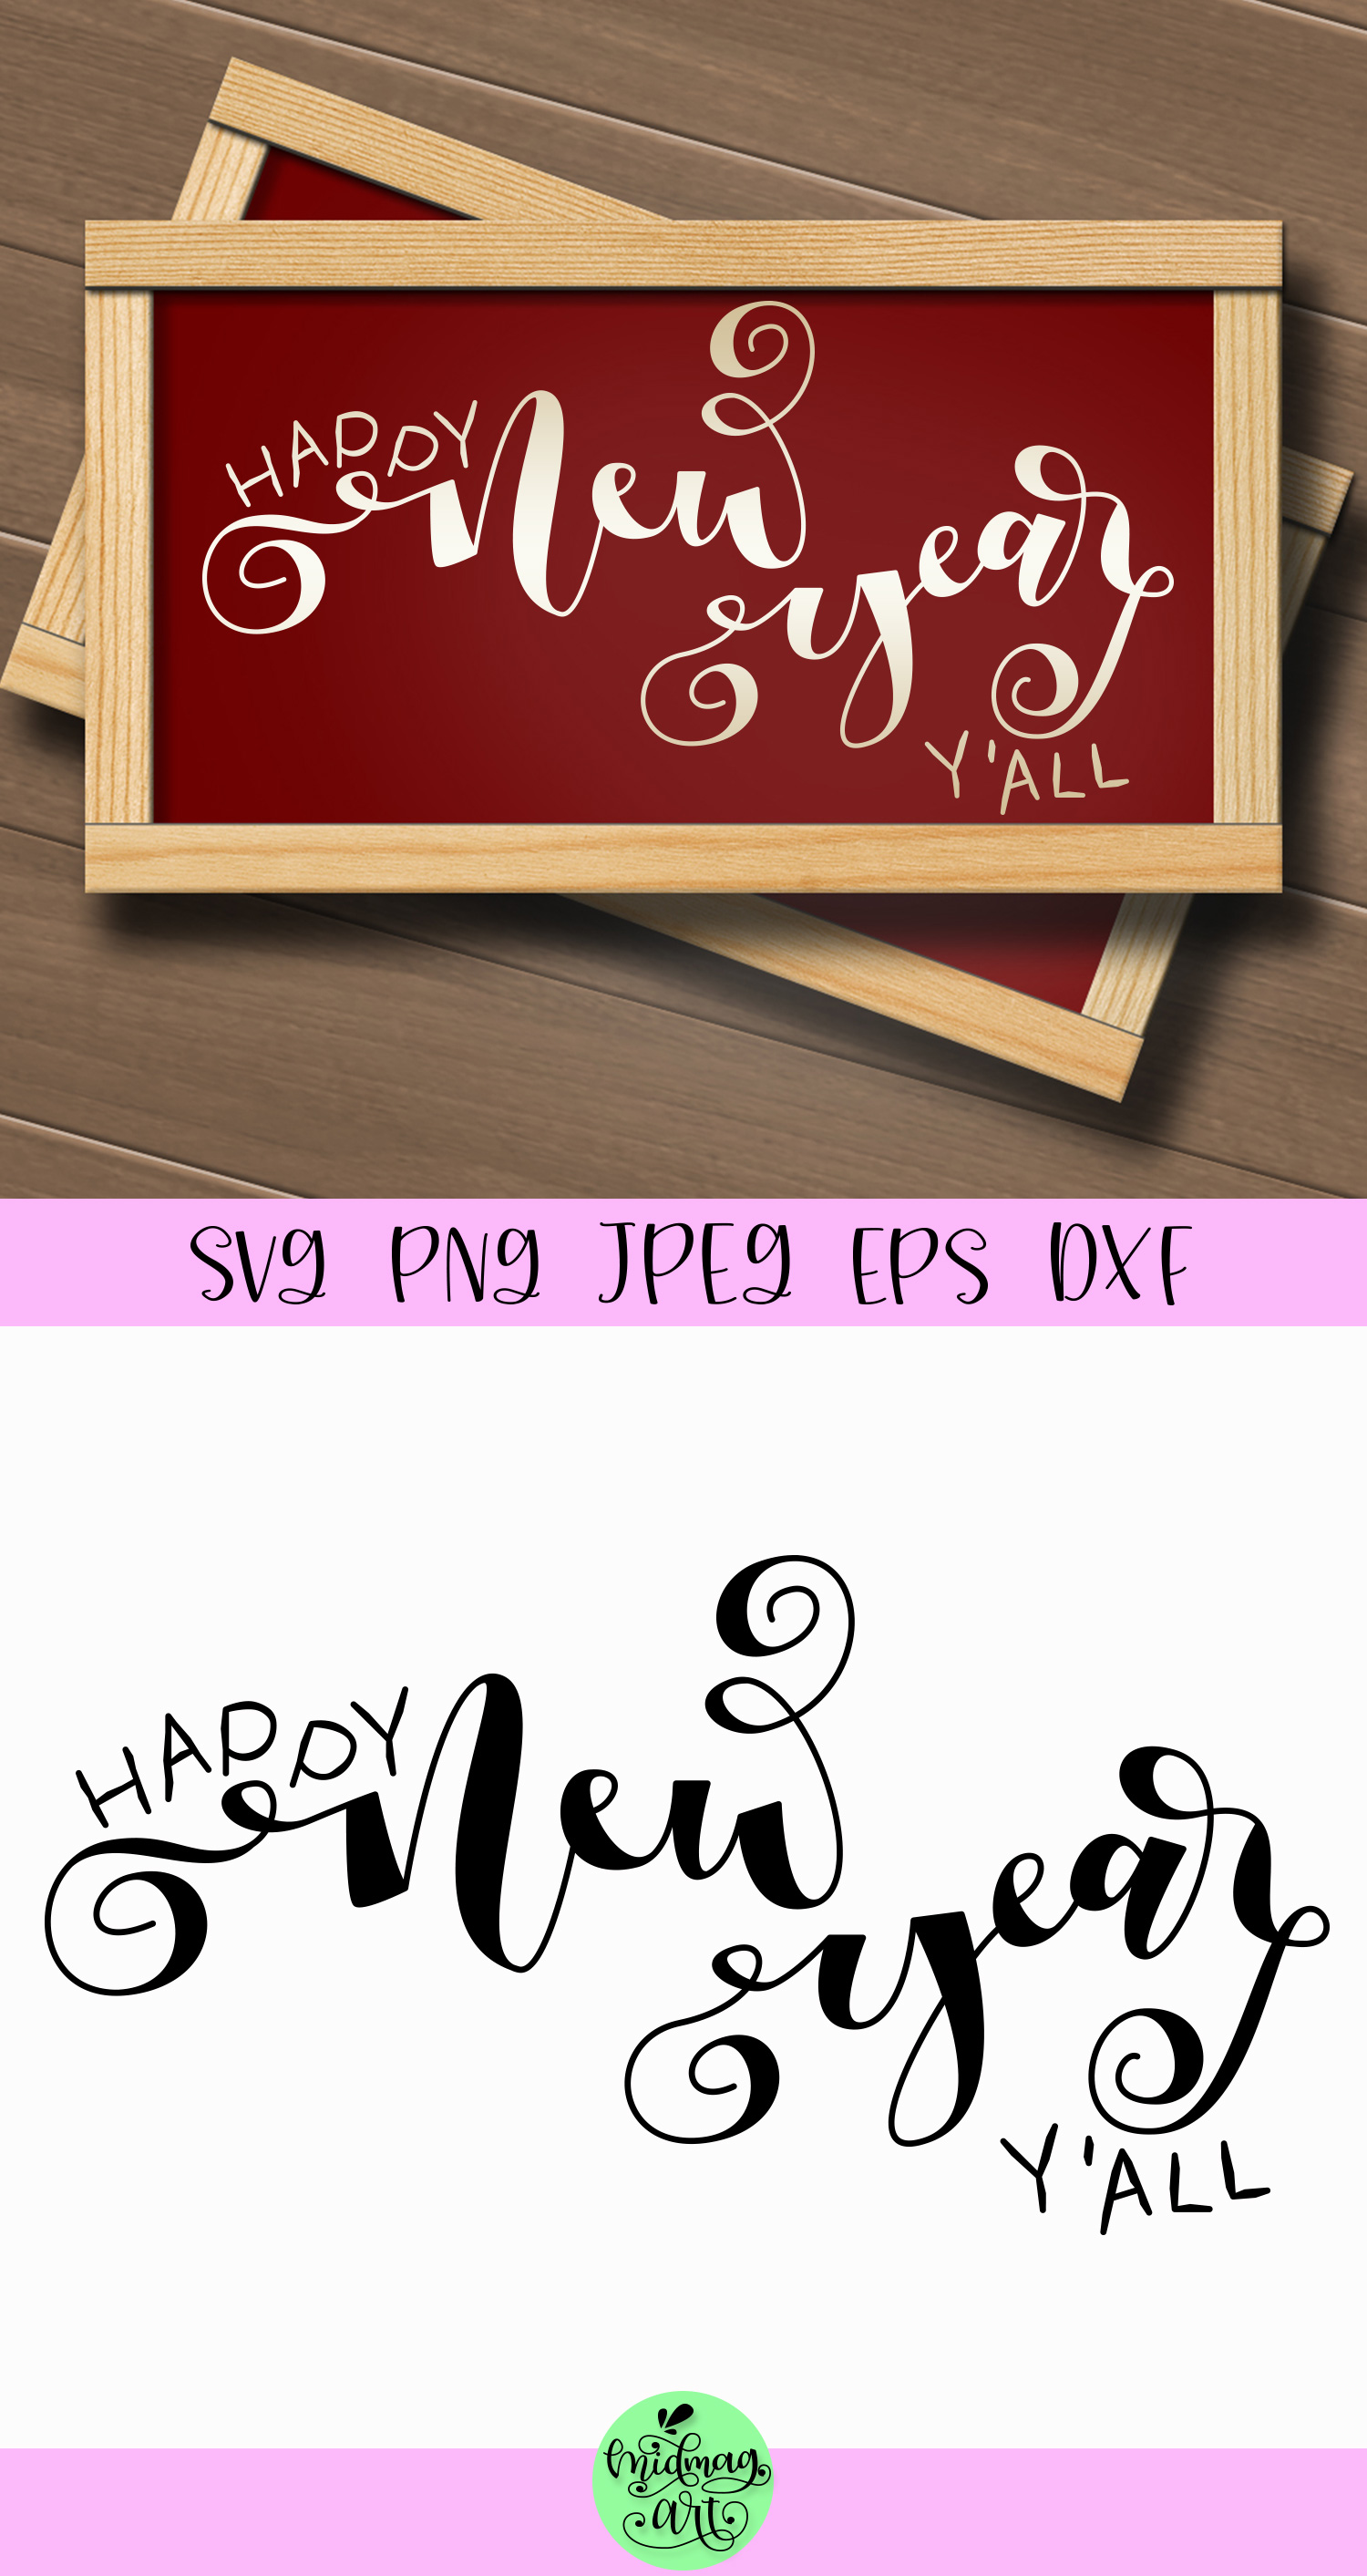 Happy new year yall sign svg, christmas svg example image 2